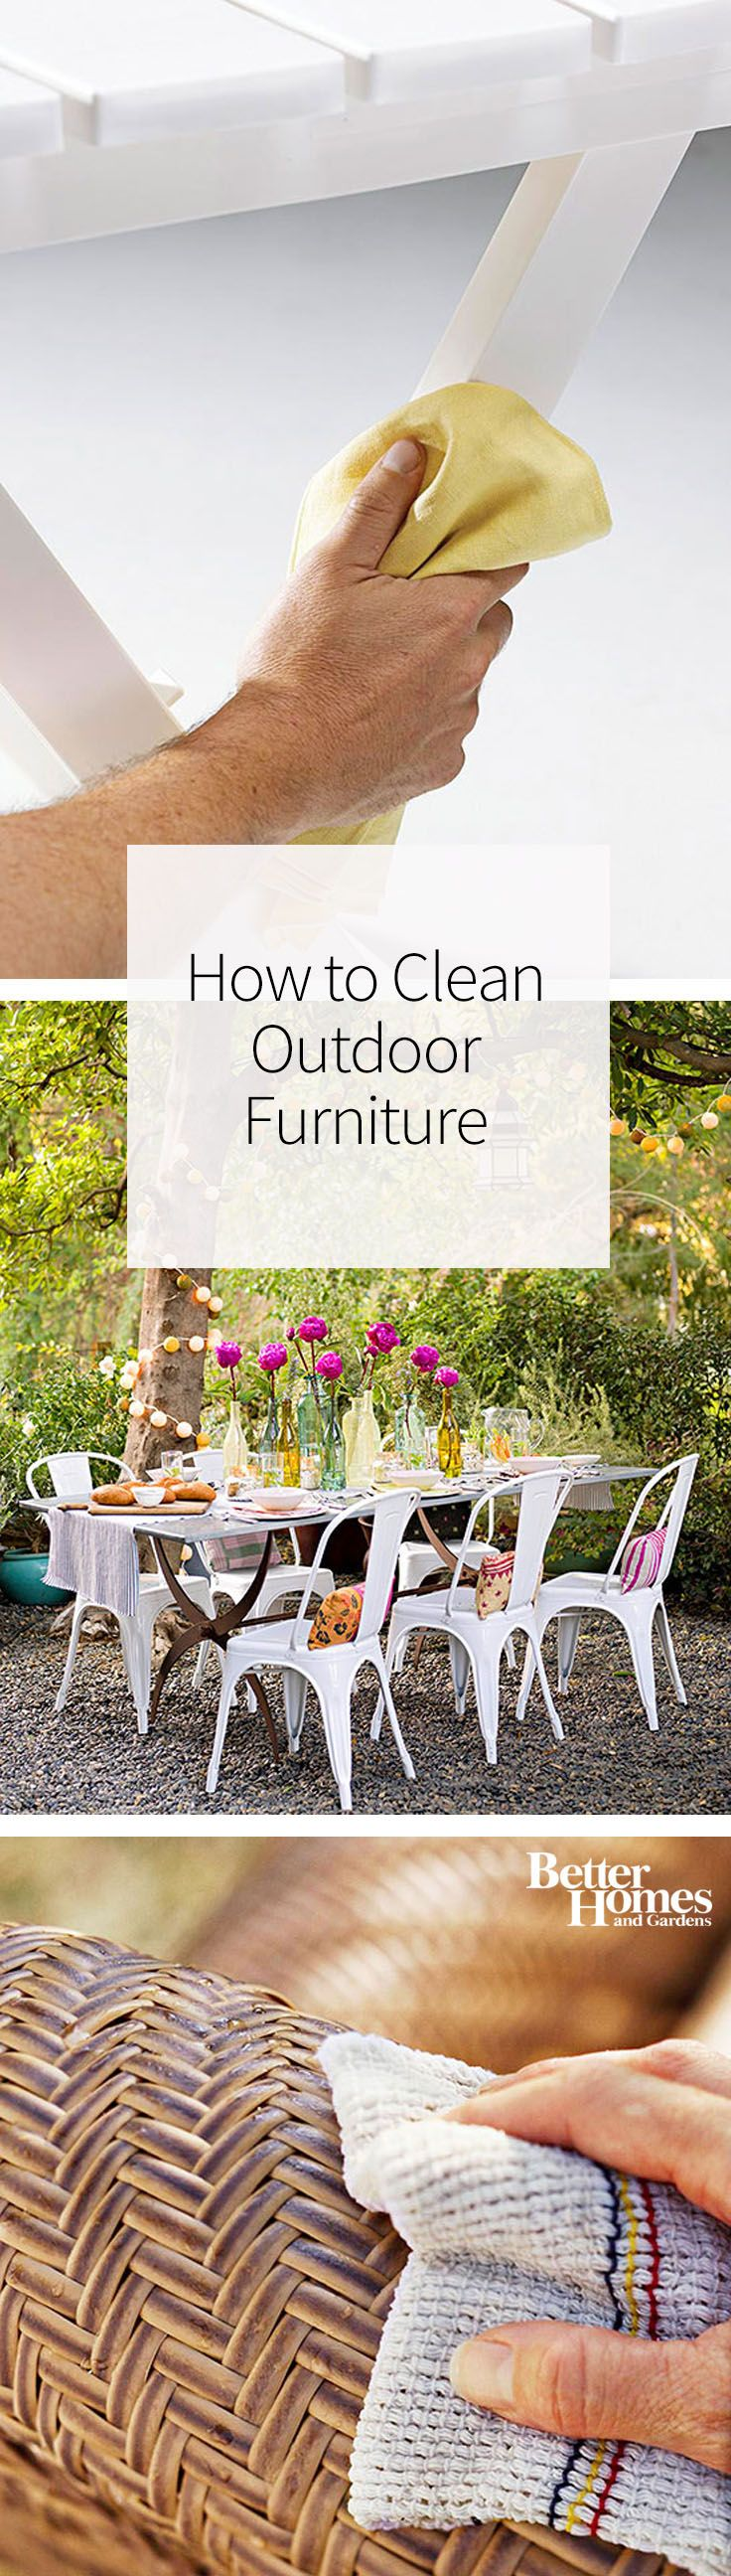 How to Clean Outdoor Furniture | Clean wood, Metals and Woods